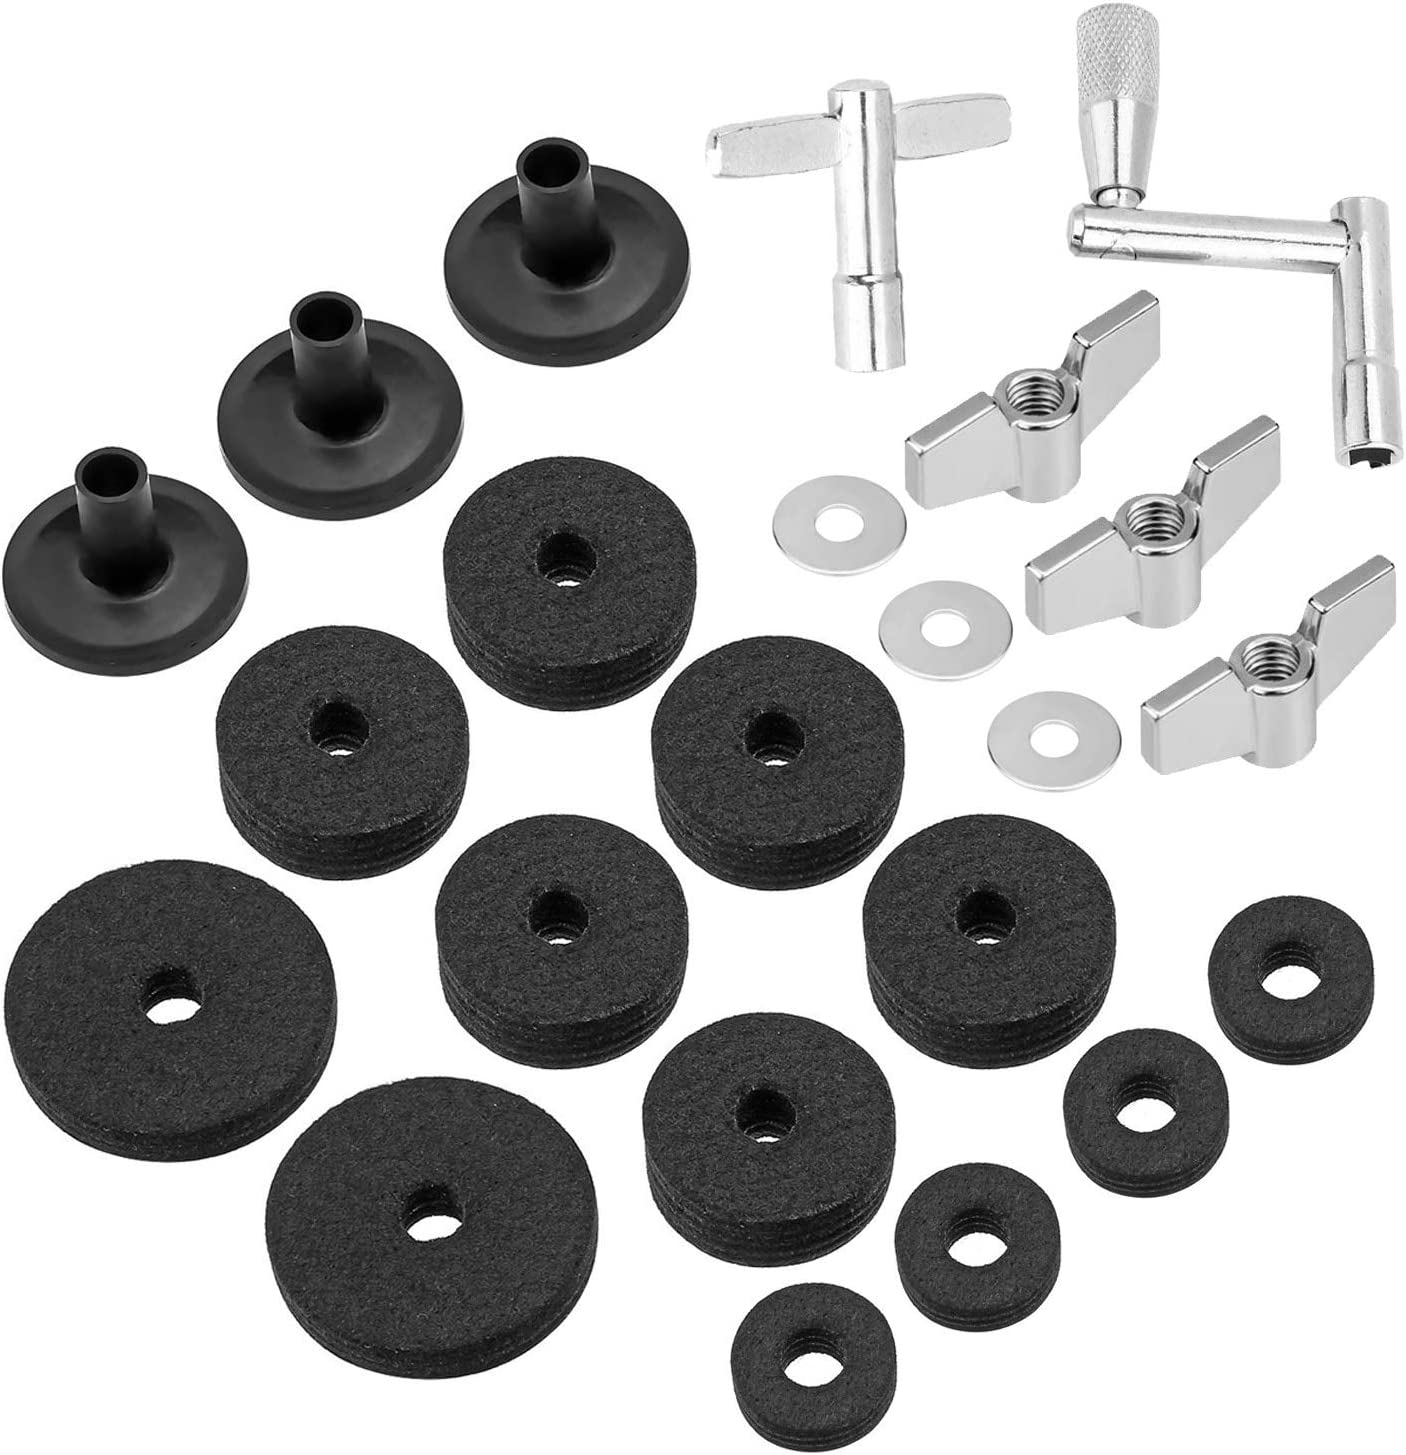 23 Pieces Cymbal Replacement Accessories Cymbal Felts Hi-Hut Clutch Felt Hi Hut Cup Felt Cymbal Sleeves mit Base Wing Nuts Cymbal Washer und Drum Keys für Drum Satz (Black)